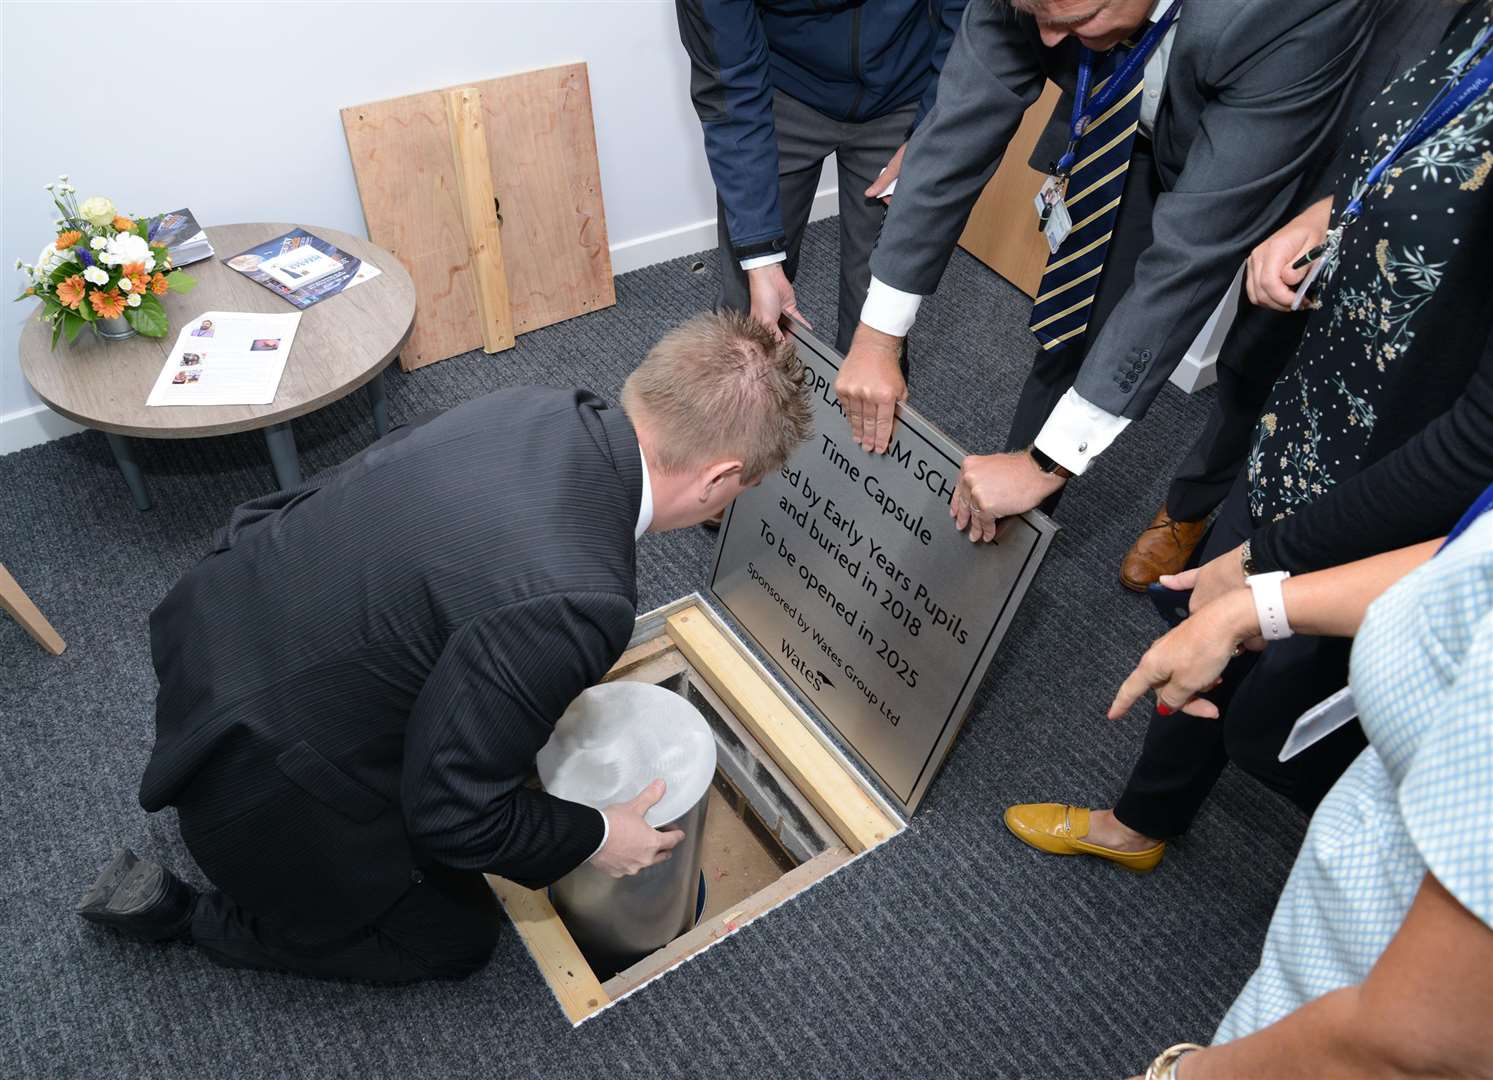 The time capsule was buried inside the school. (4181152)